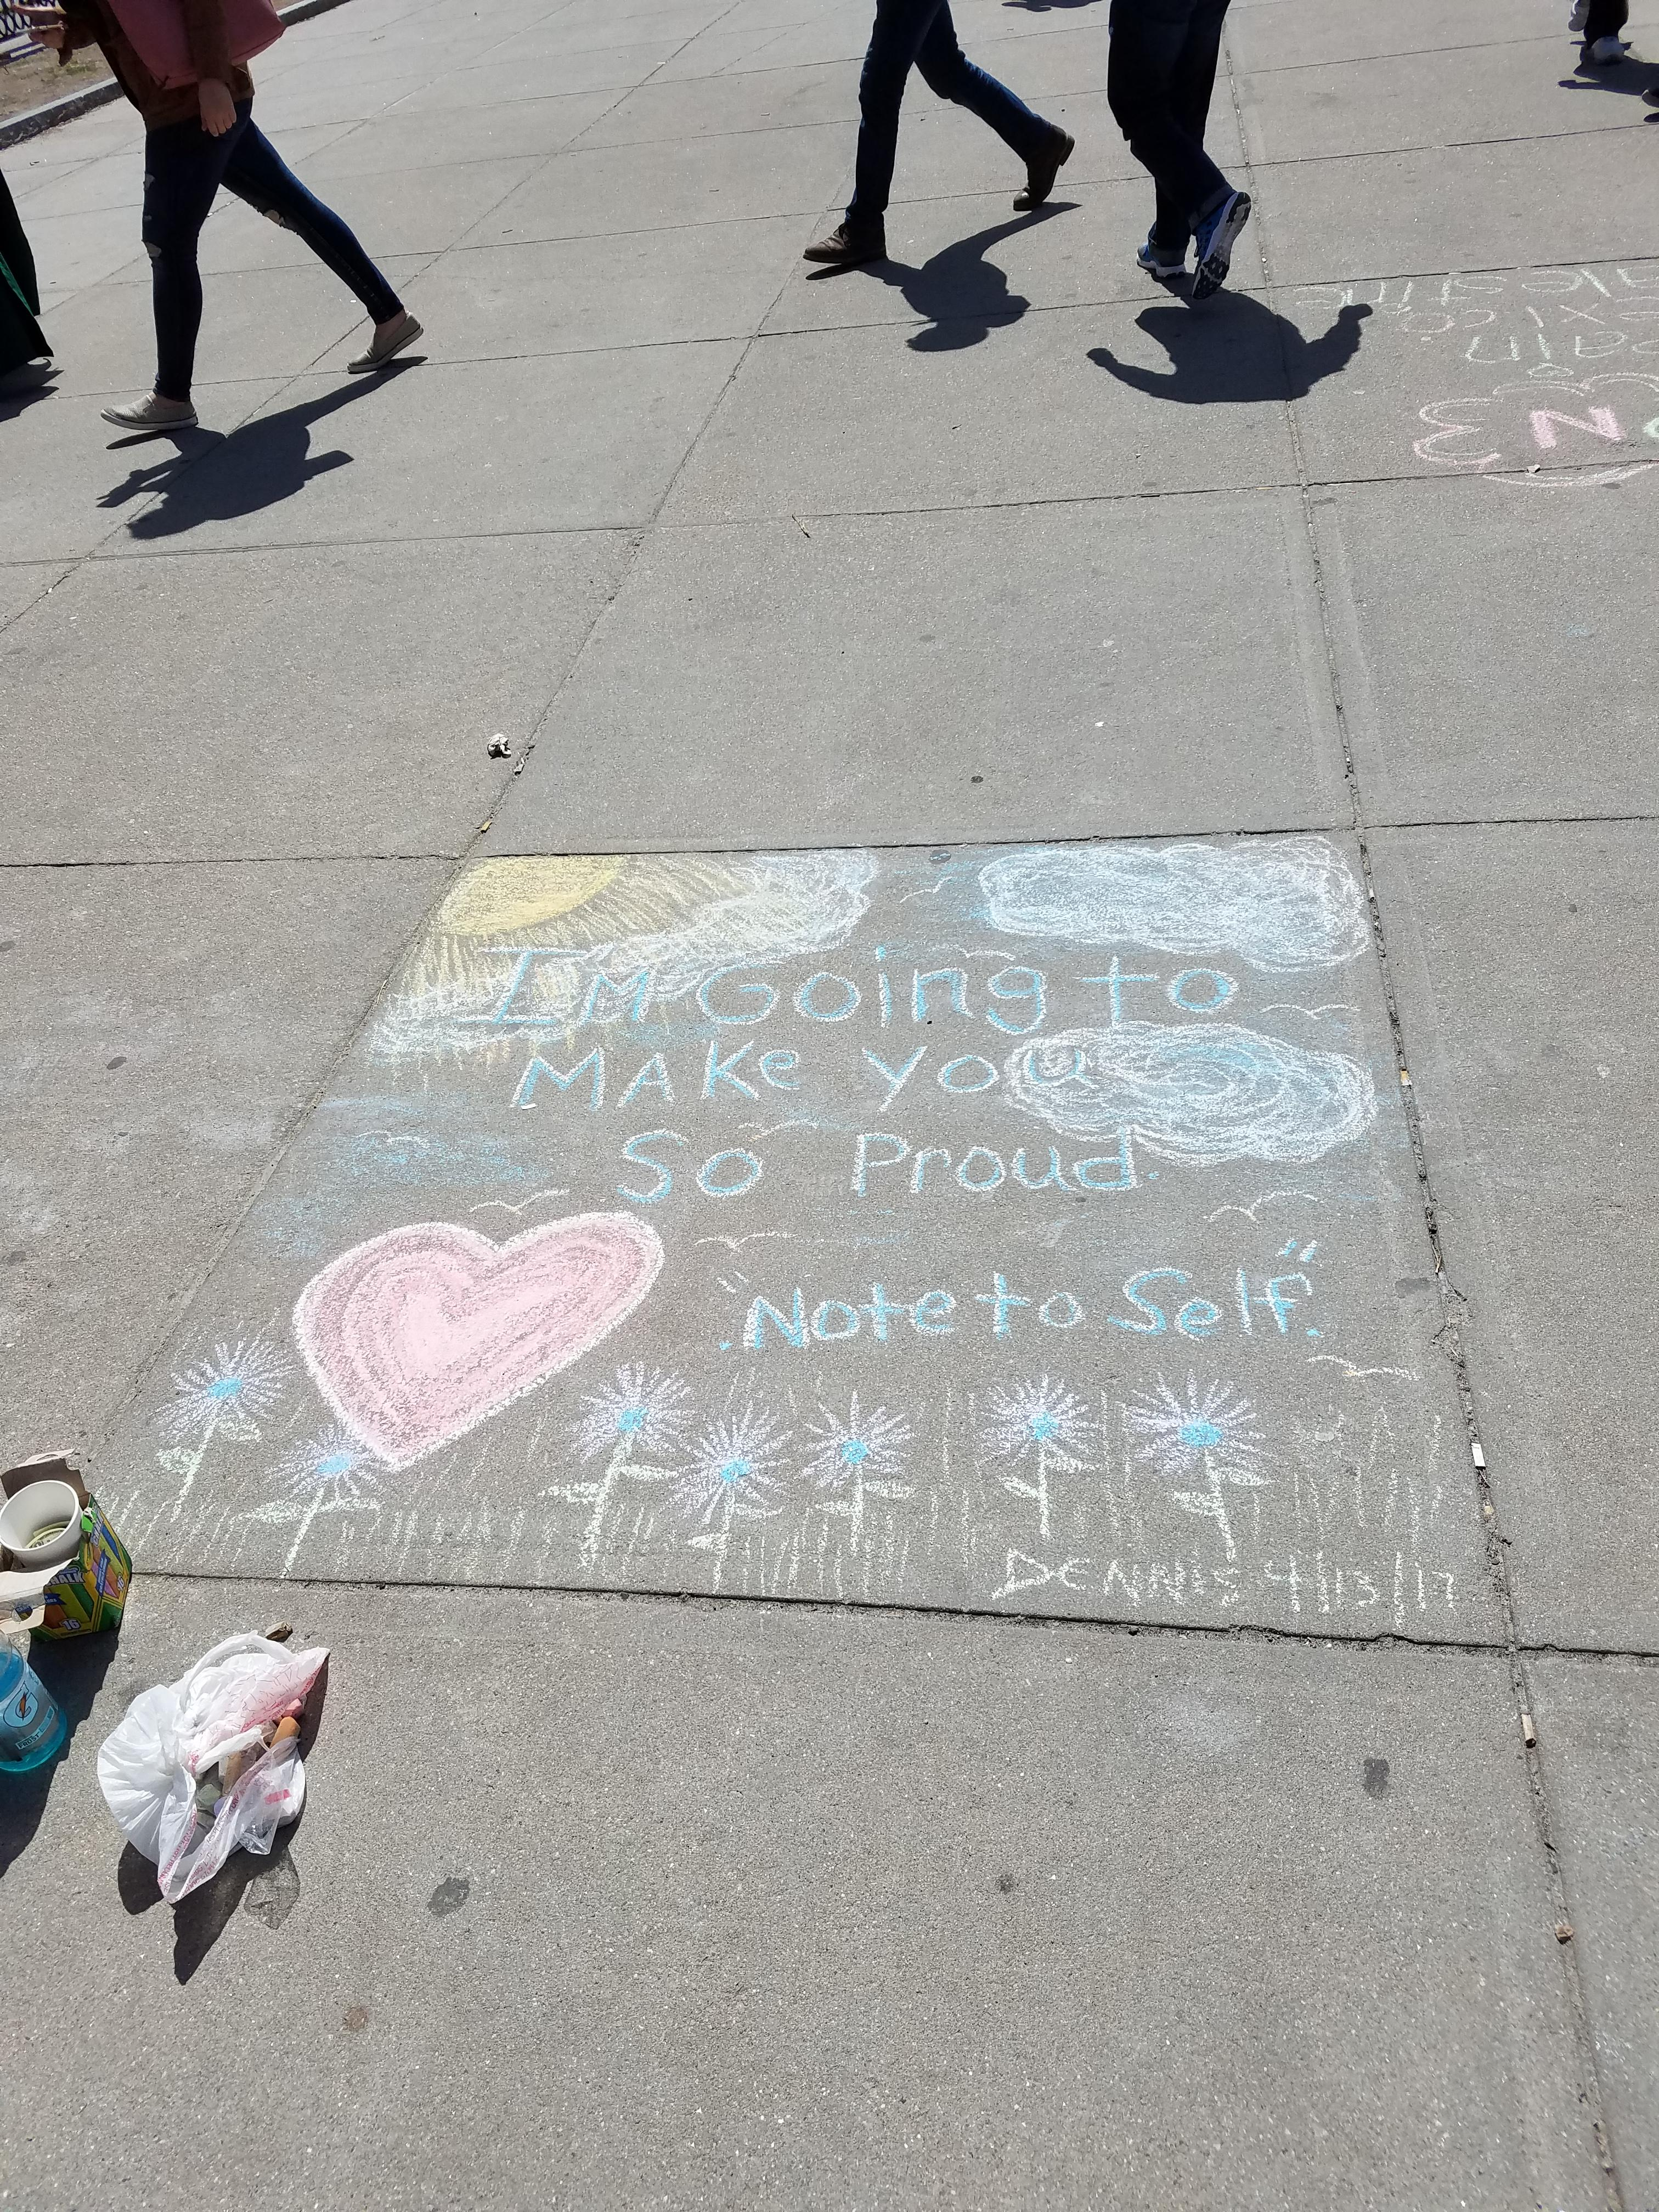 [Image] downtown Dennis, of Boston mA, draws messages of hope with chalk (OC)